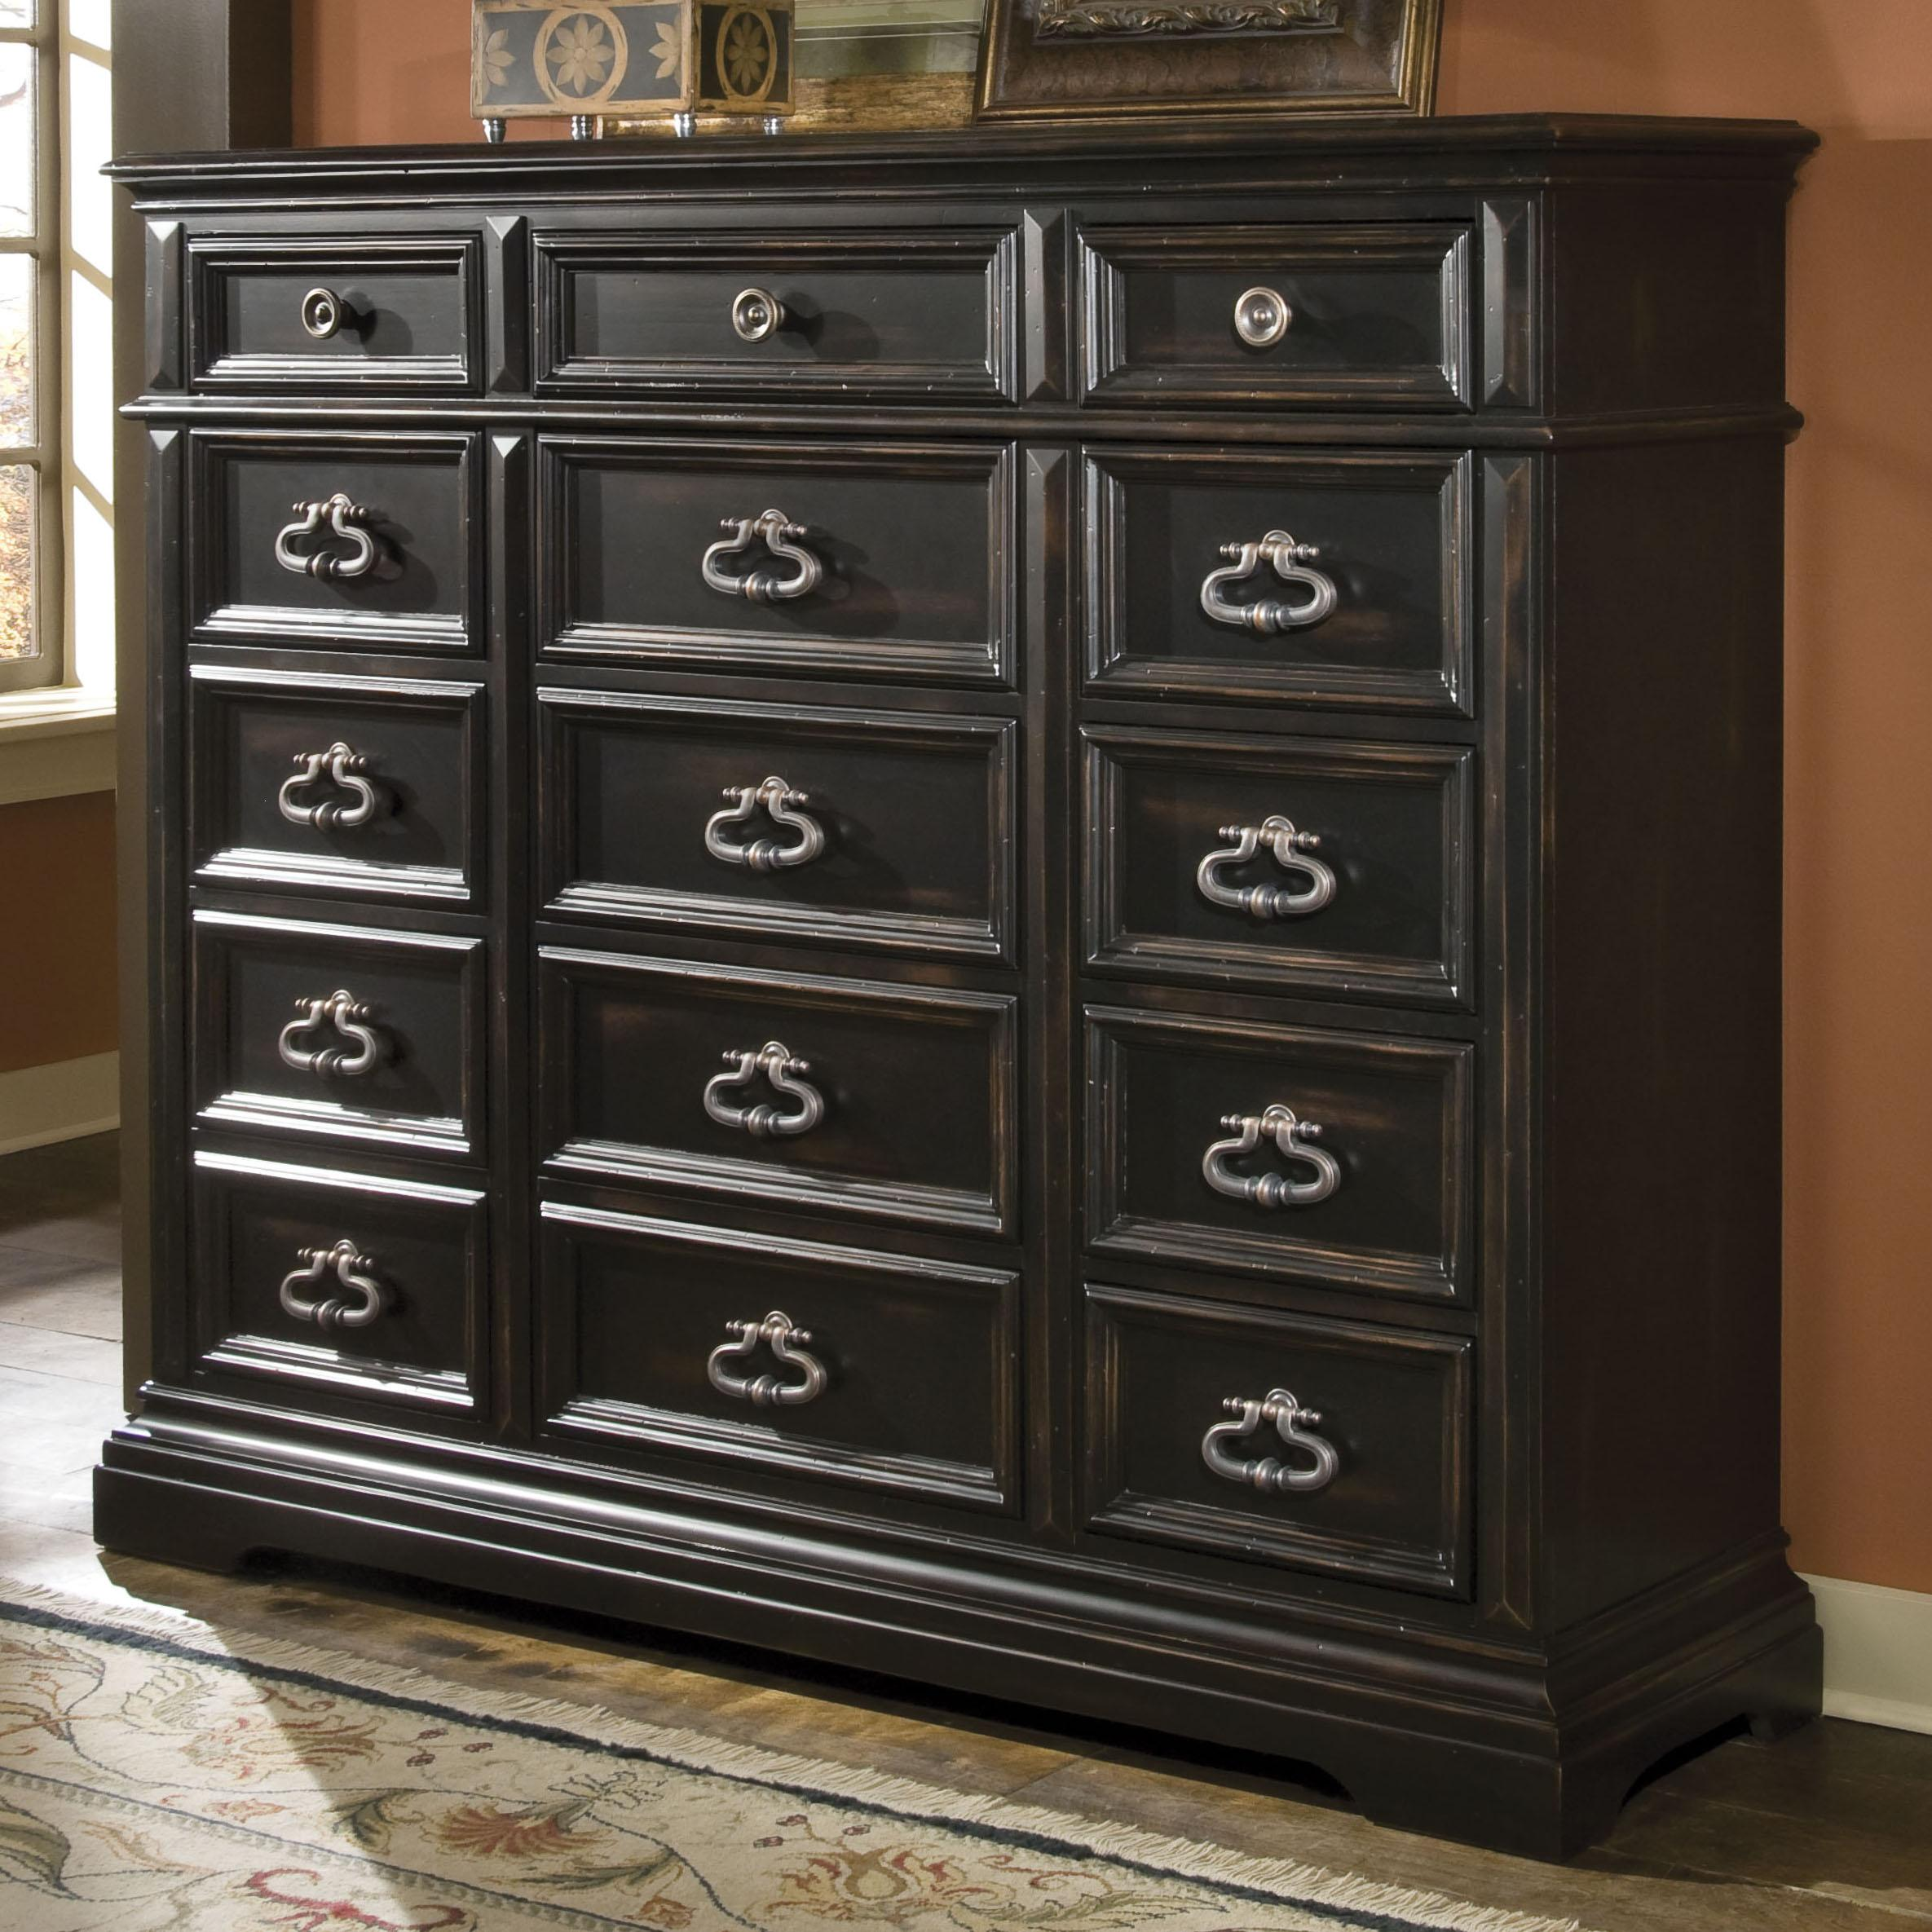 Pulaski Furniture Brookfield Brookfield Gentlemen's Chest - Item Number: 993127